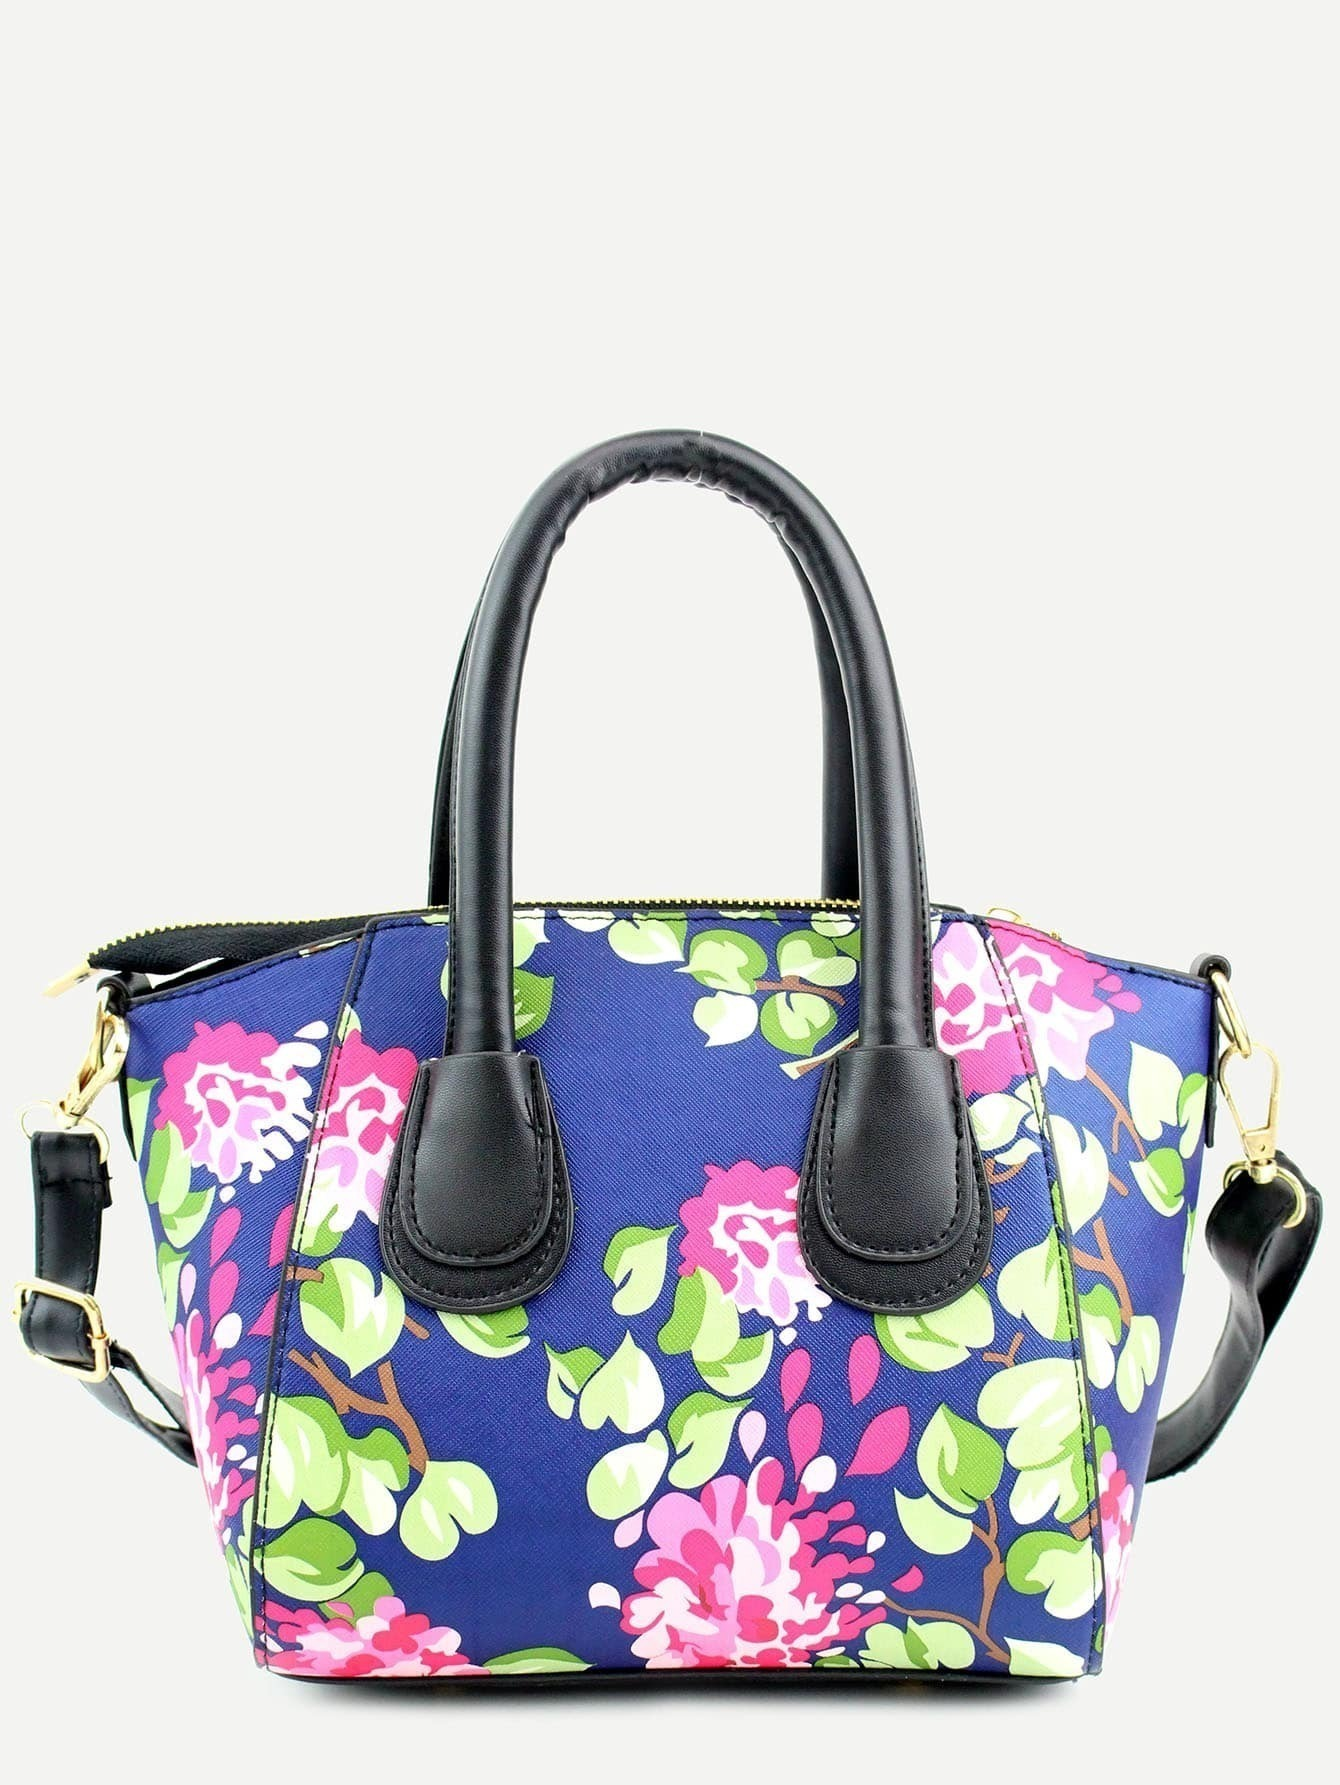 Blue Floral Print Handbag With StrapFor Women-romwe